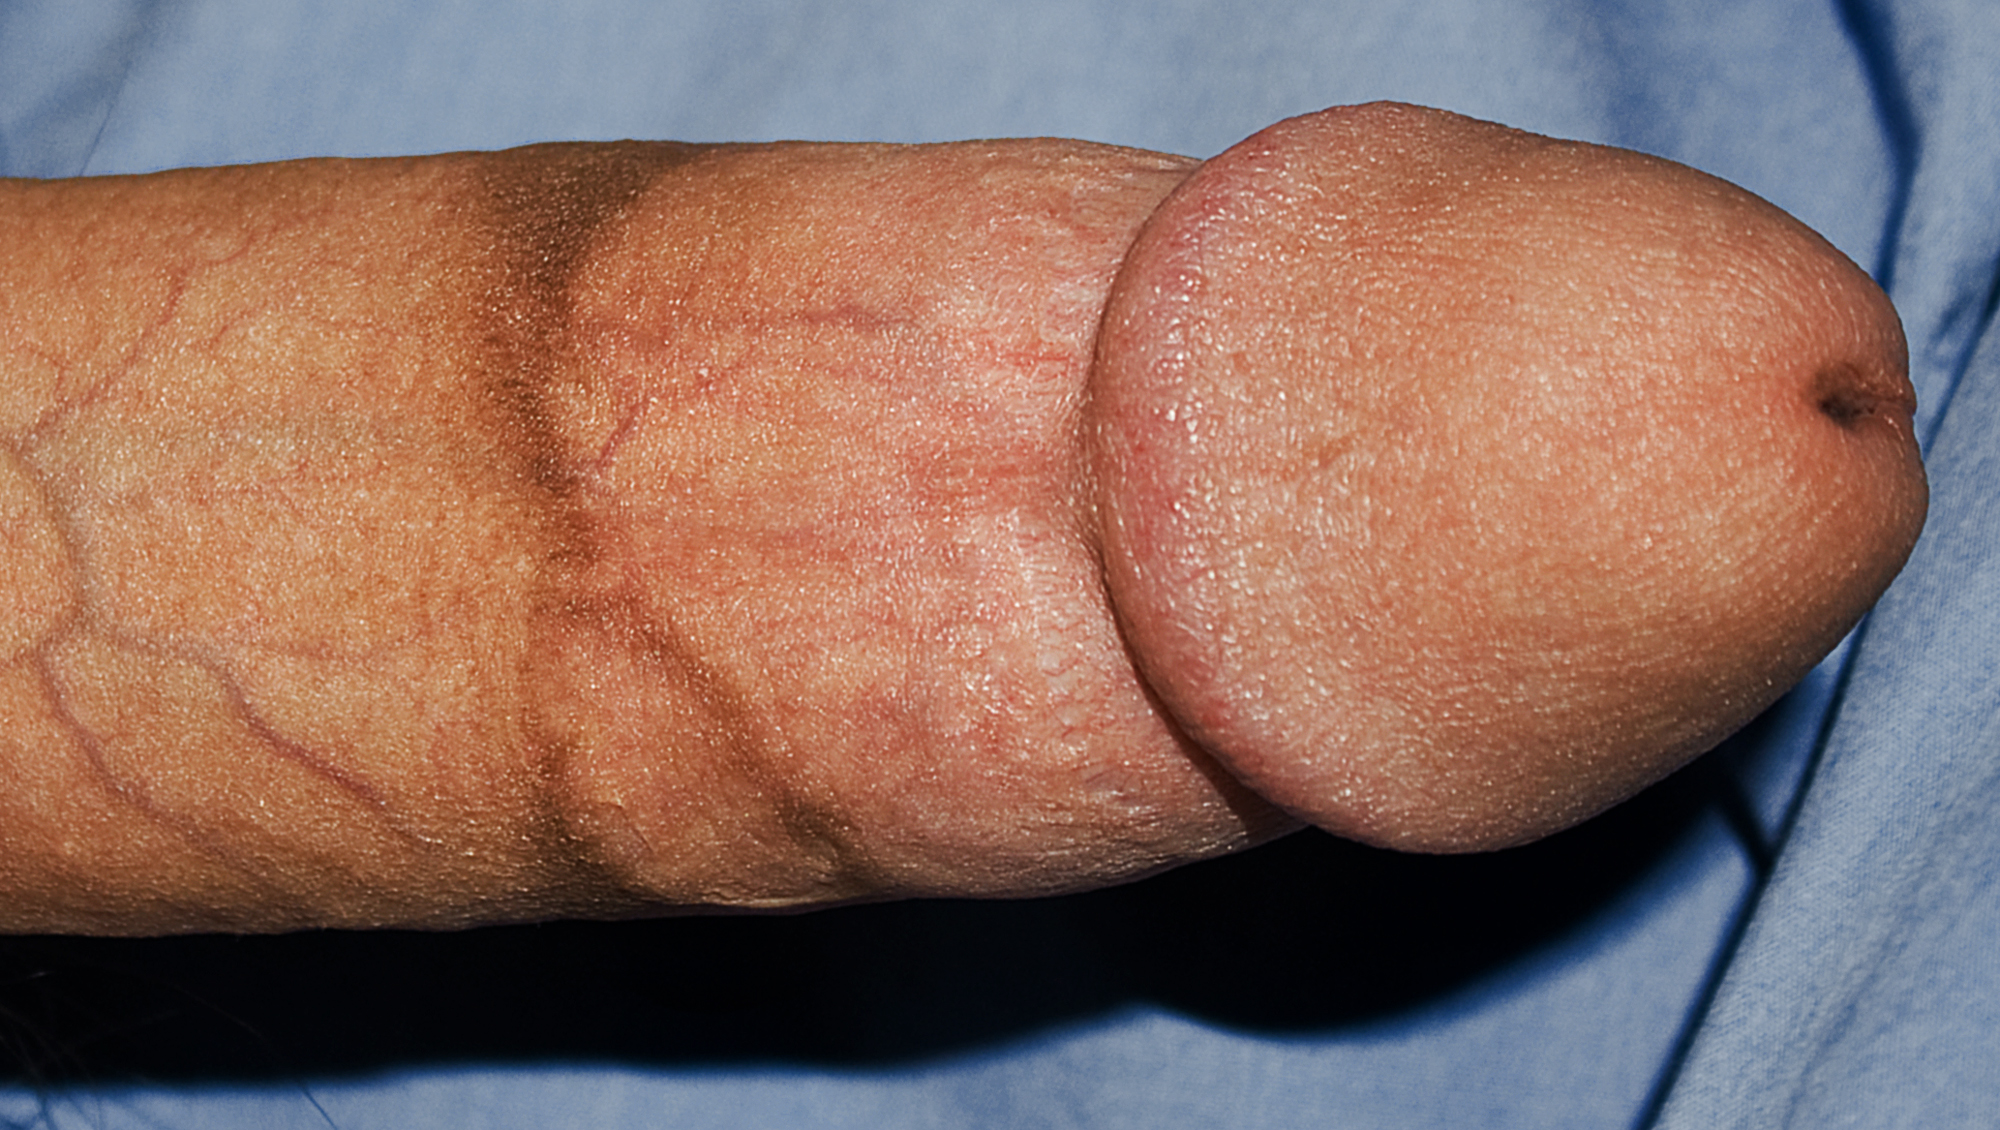 This image got me wondering, how big does your penis have to be for you to die of an erection